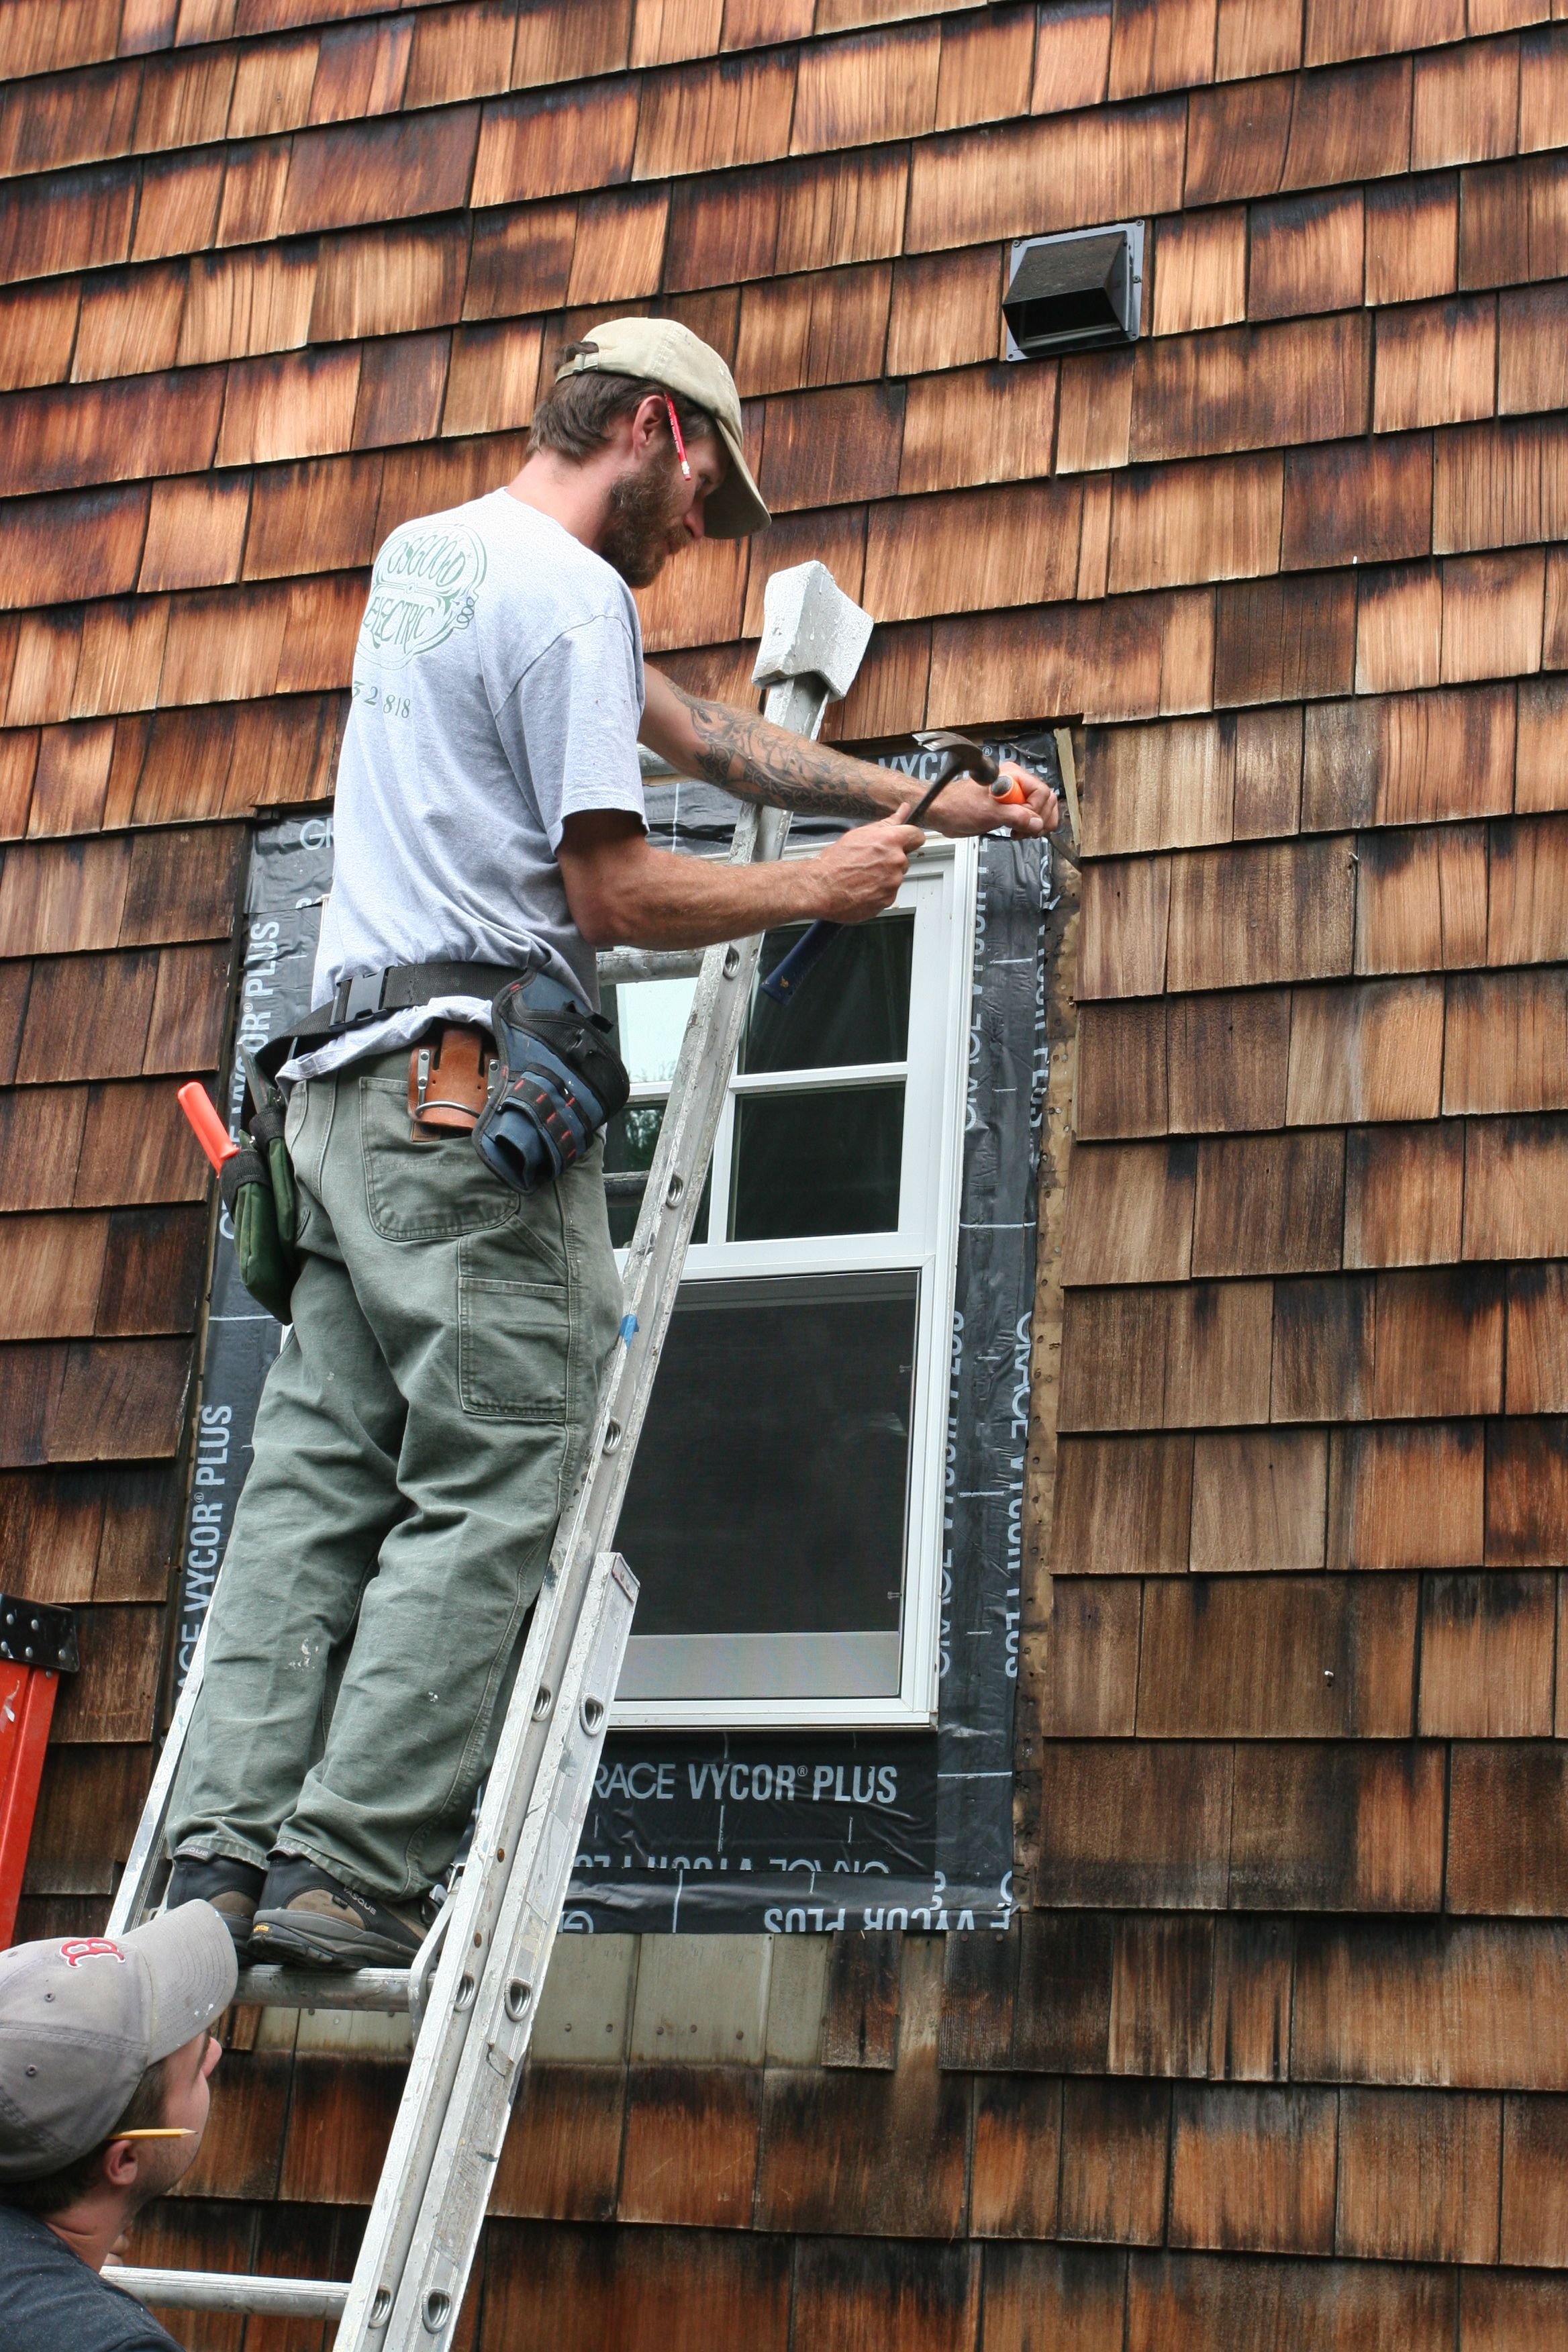 Hand work, chiseling out the brittle shingles.